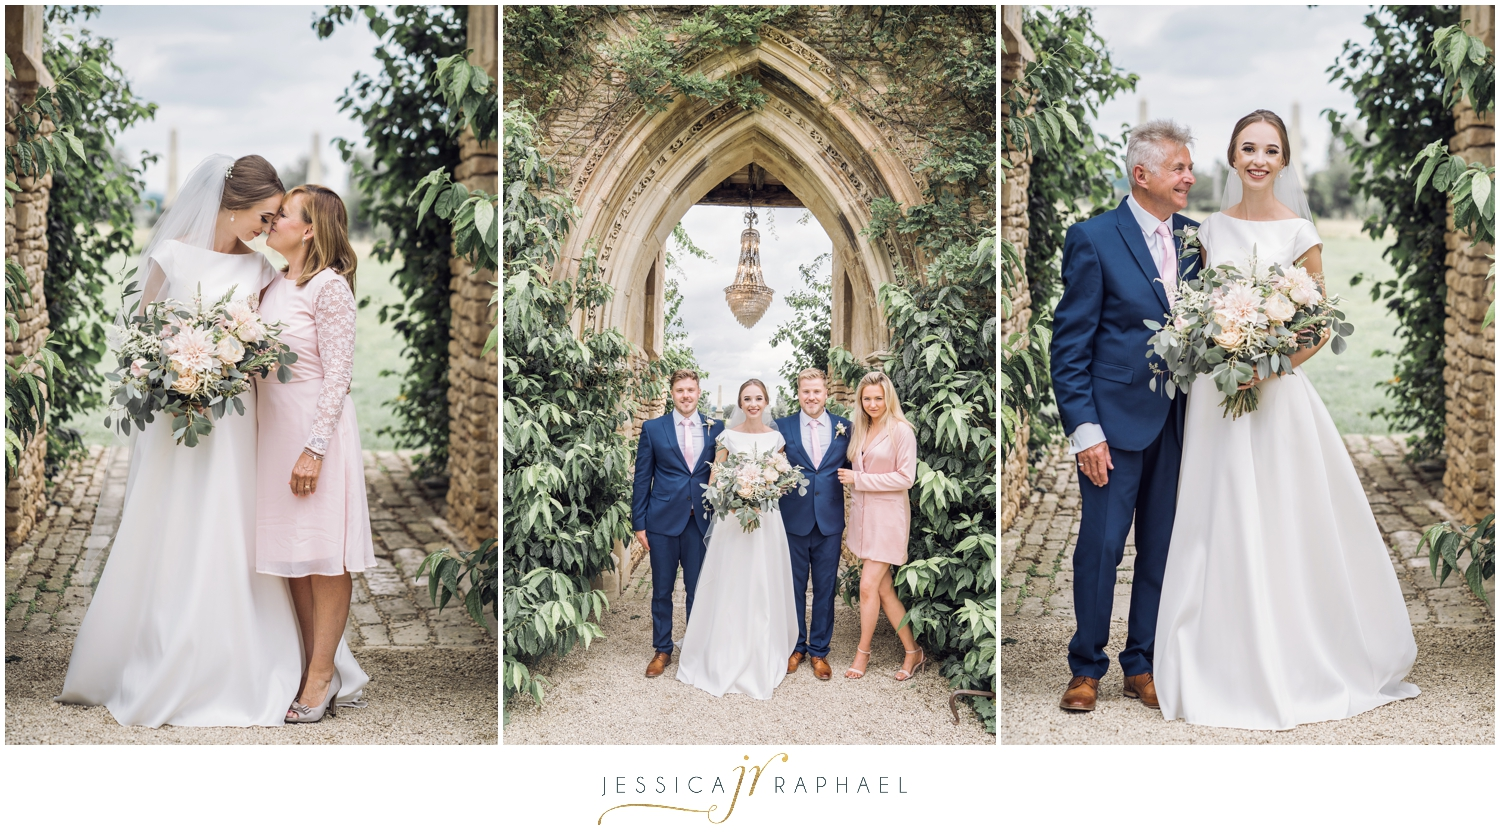 euridge-manor-weddings-the-lost-orangery-jessica-raphael-photography